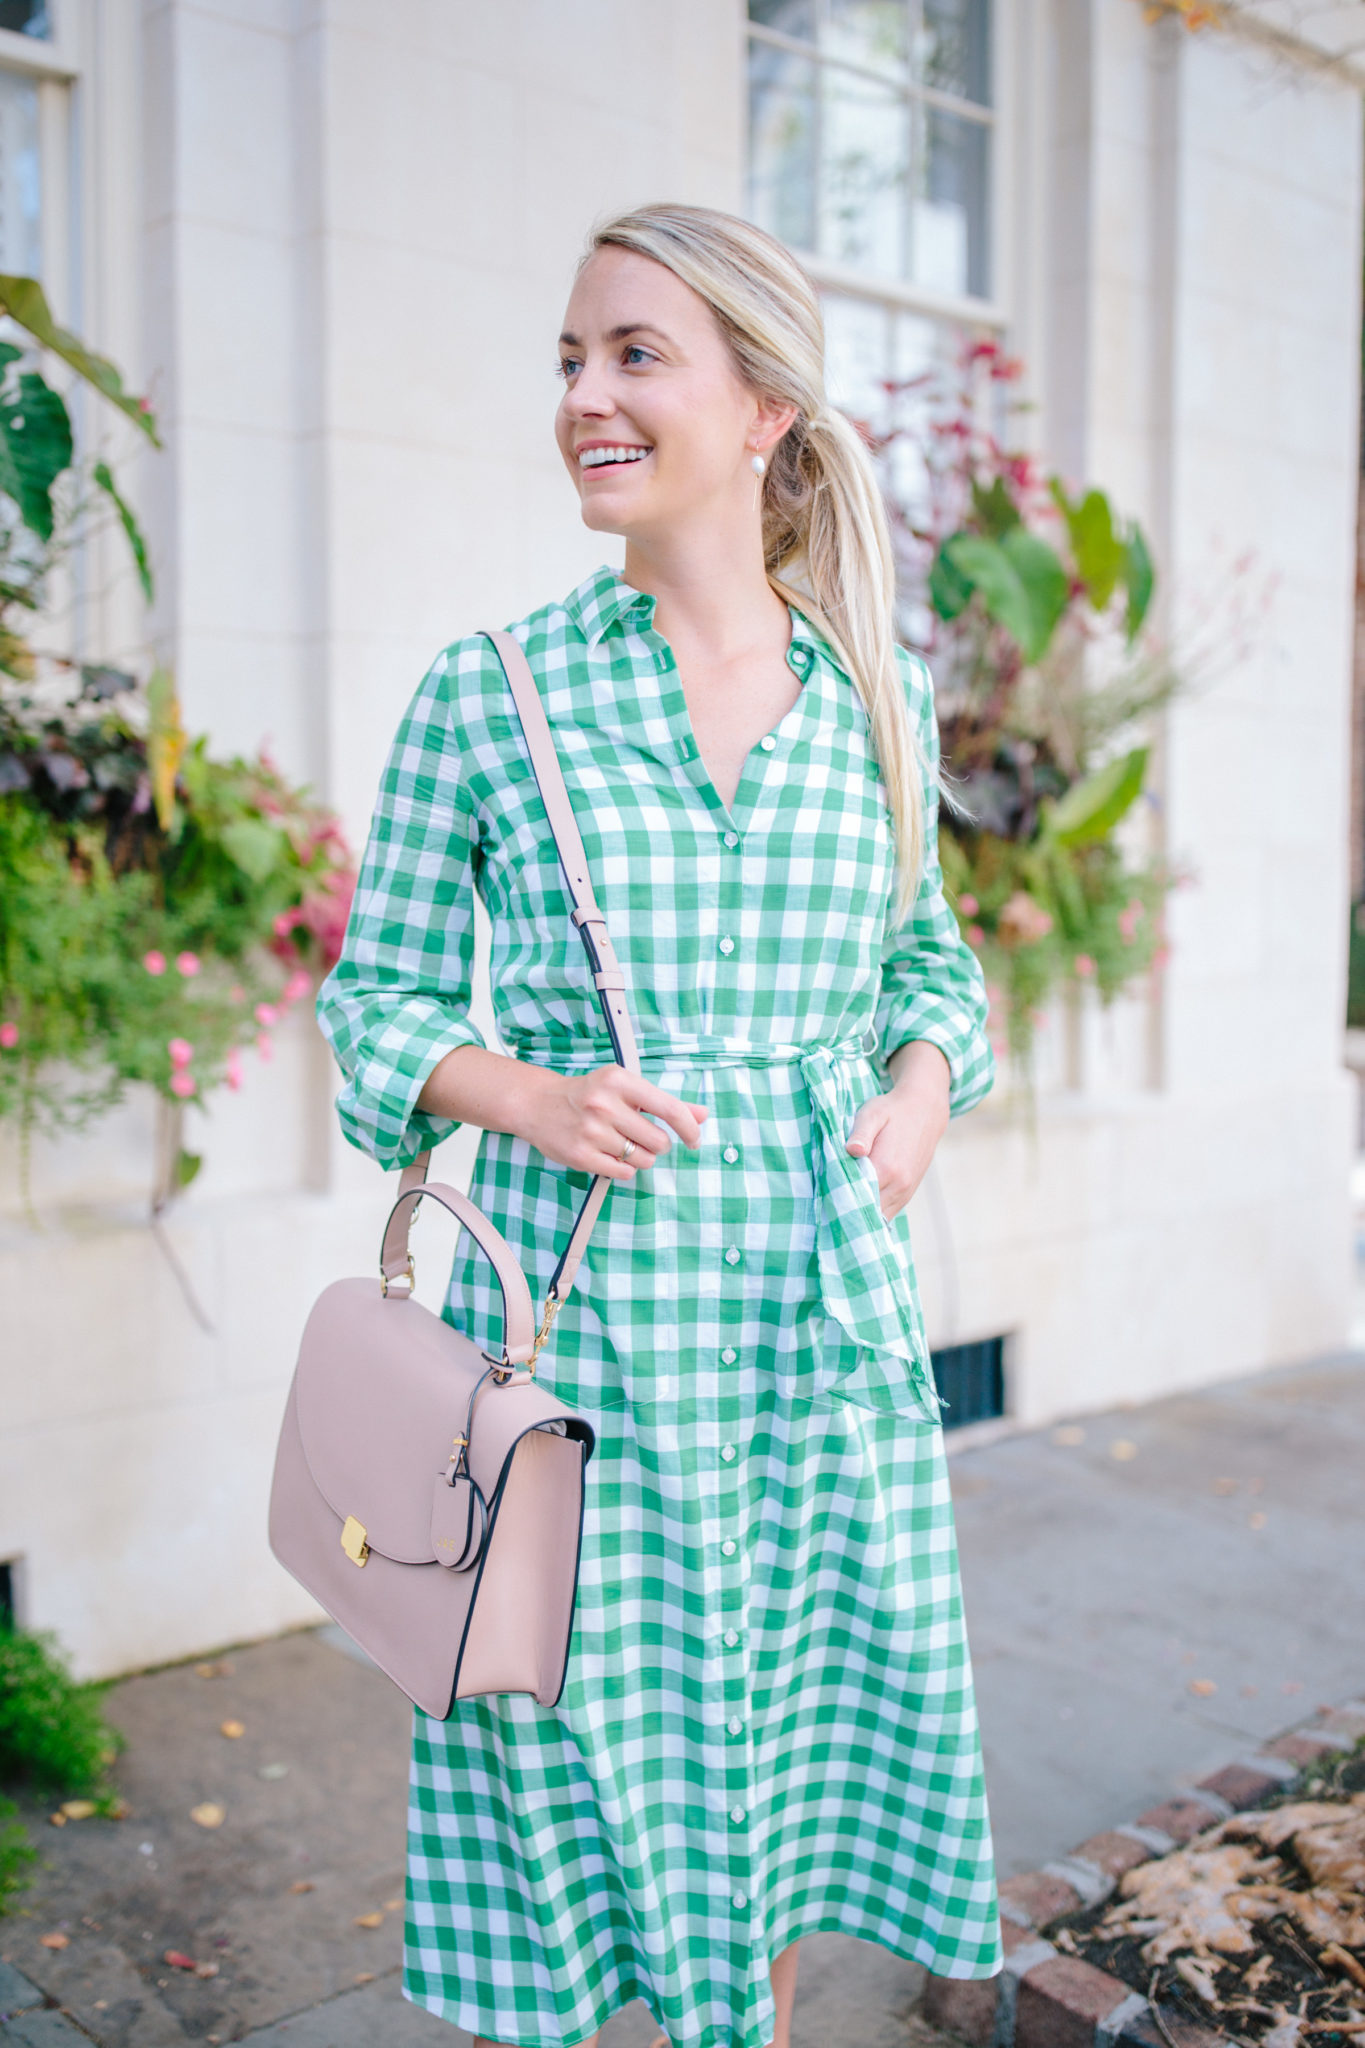 How To Wear A Gingham Dress- Gingham Shirtdresses   Rhyme & Reason